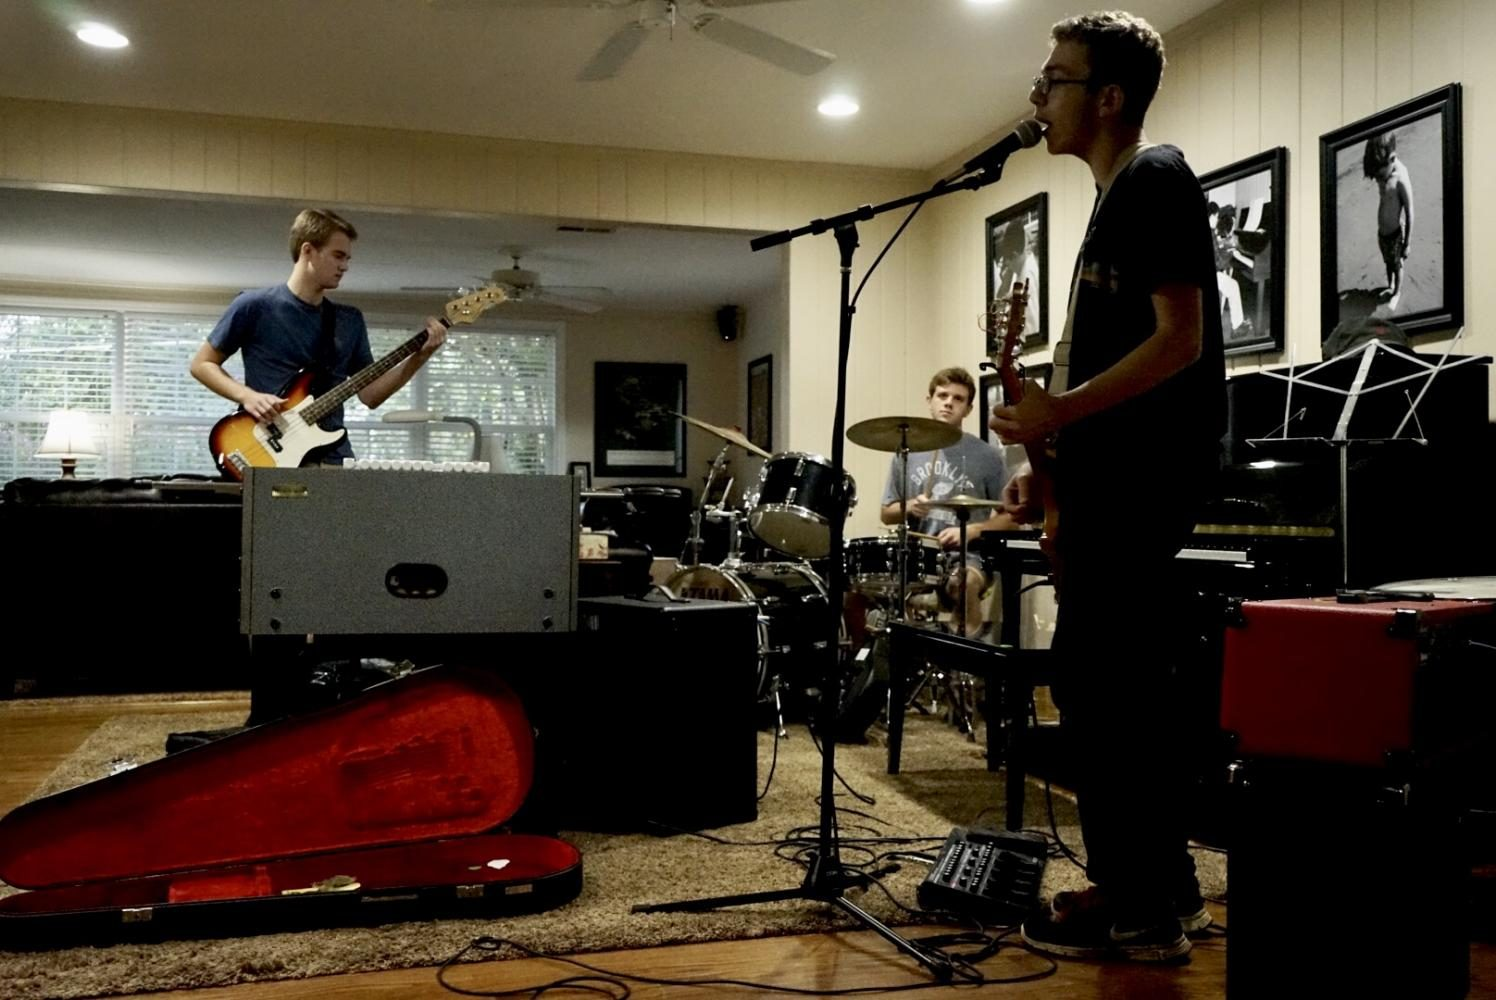 Bearden seniors Lucas Baudry (guitar) and Nathaniel Blalock (drums) formed the band Cabbage College this summer.